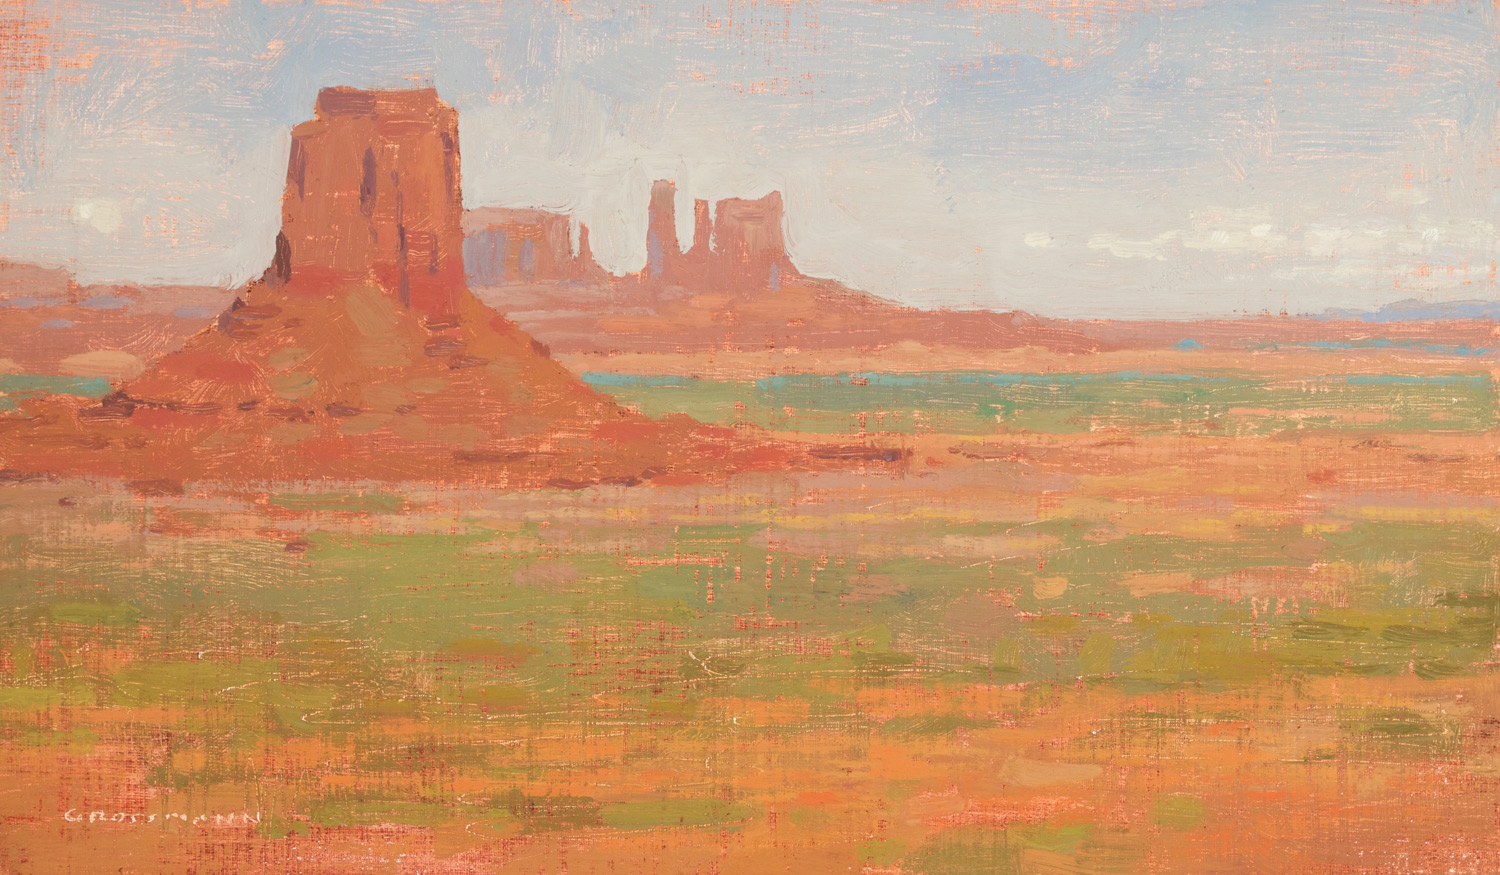 """(SOLD) David Grossmann """"Afternoon Light, Monument Valley Formation"""" 7″x12″ Oil"""